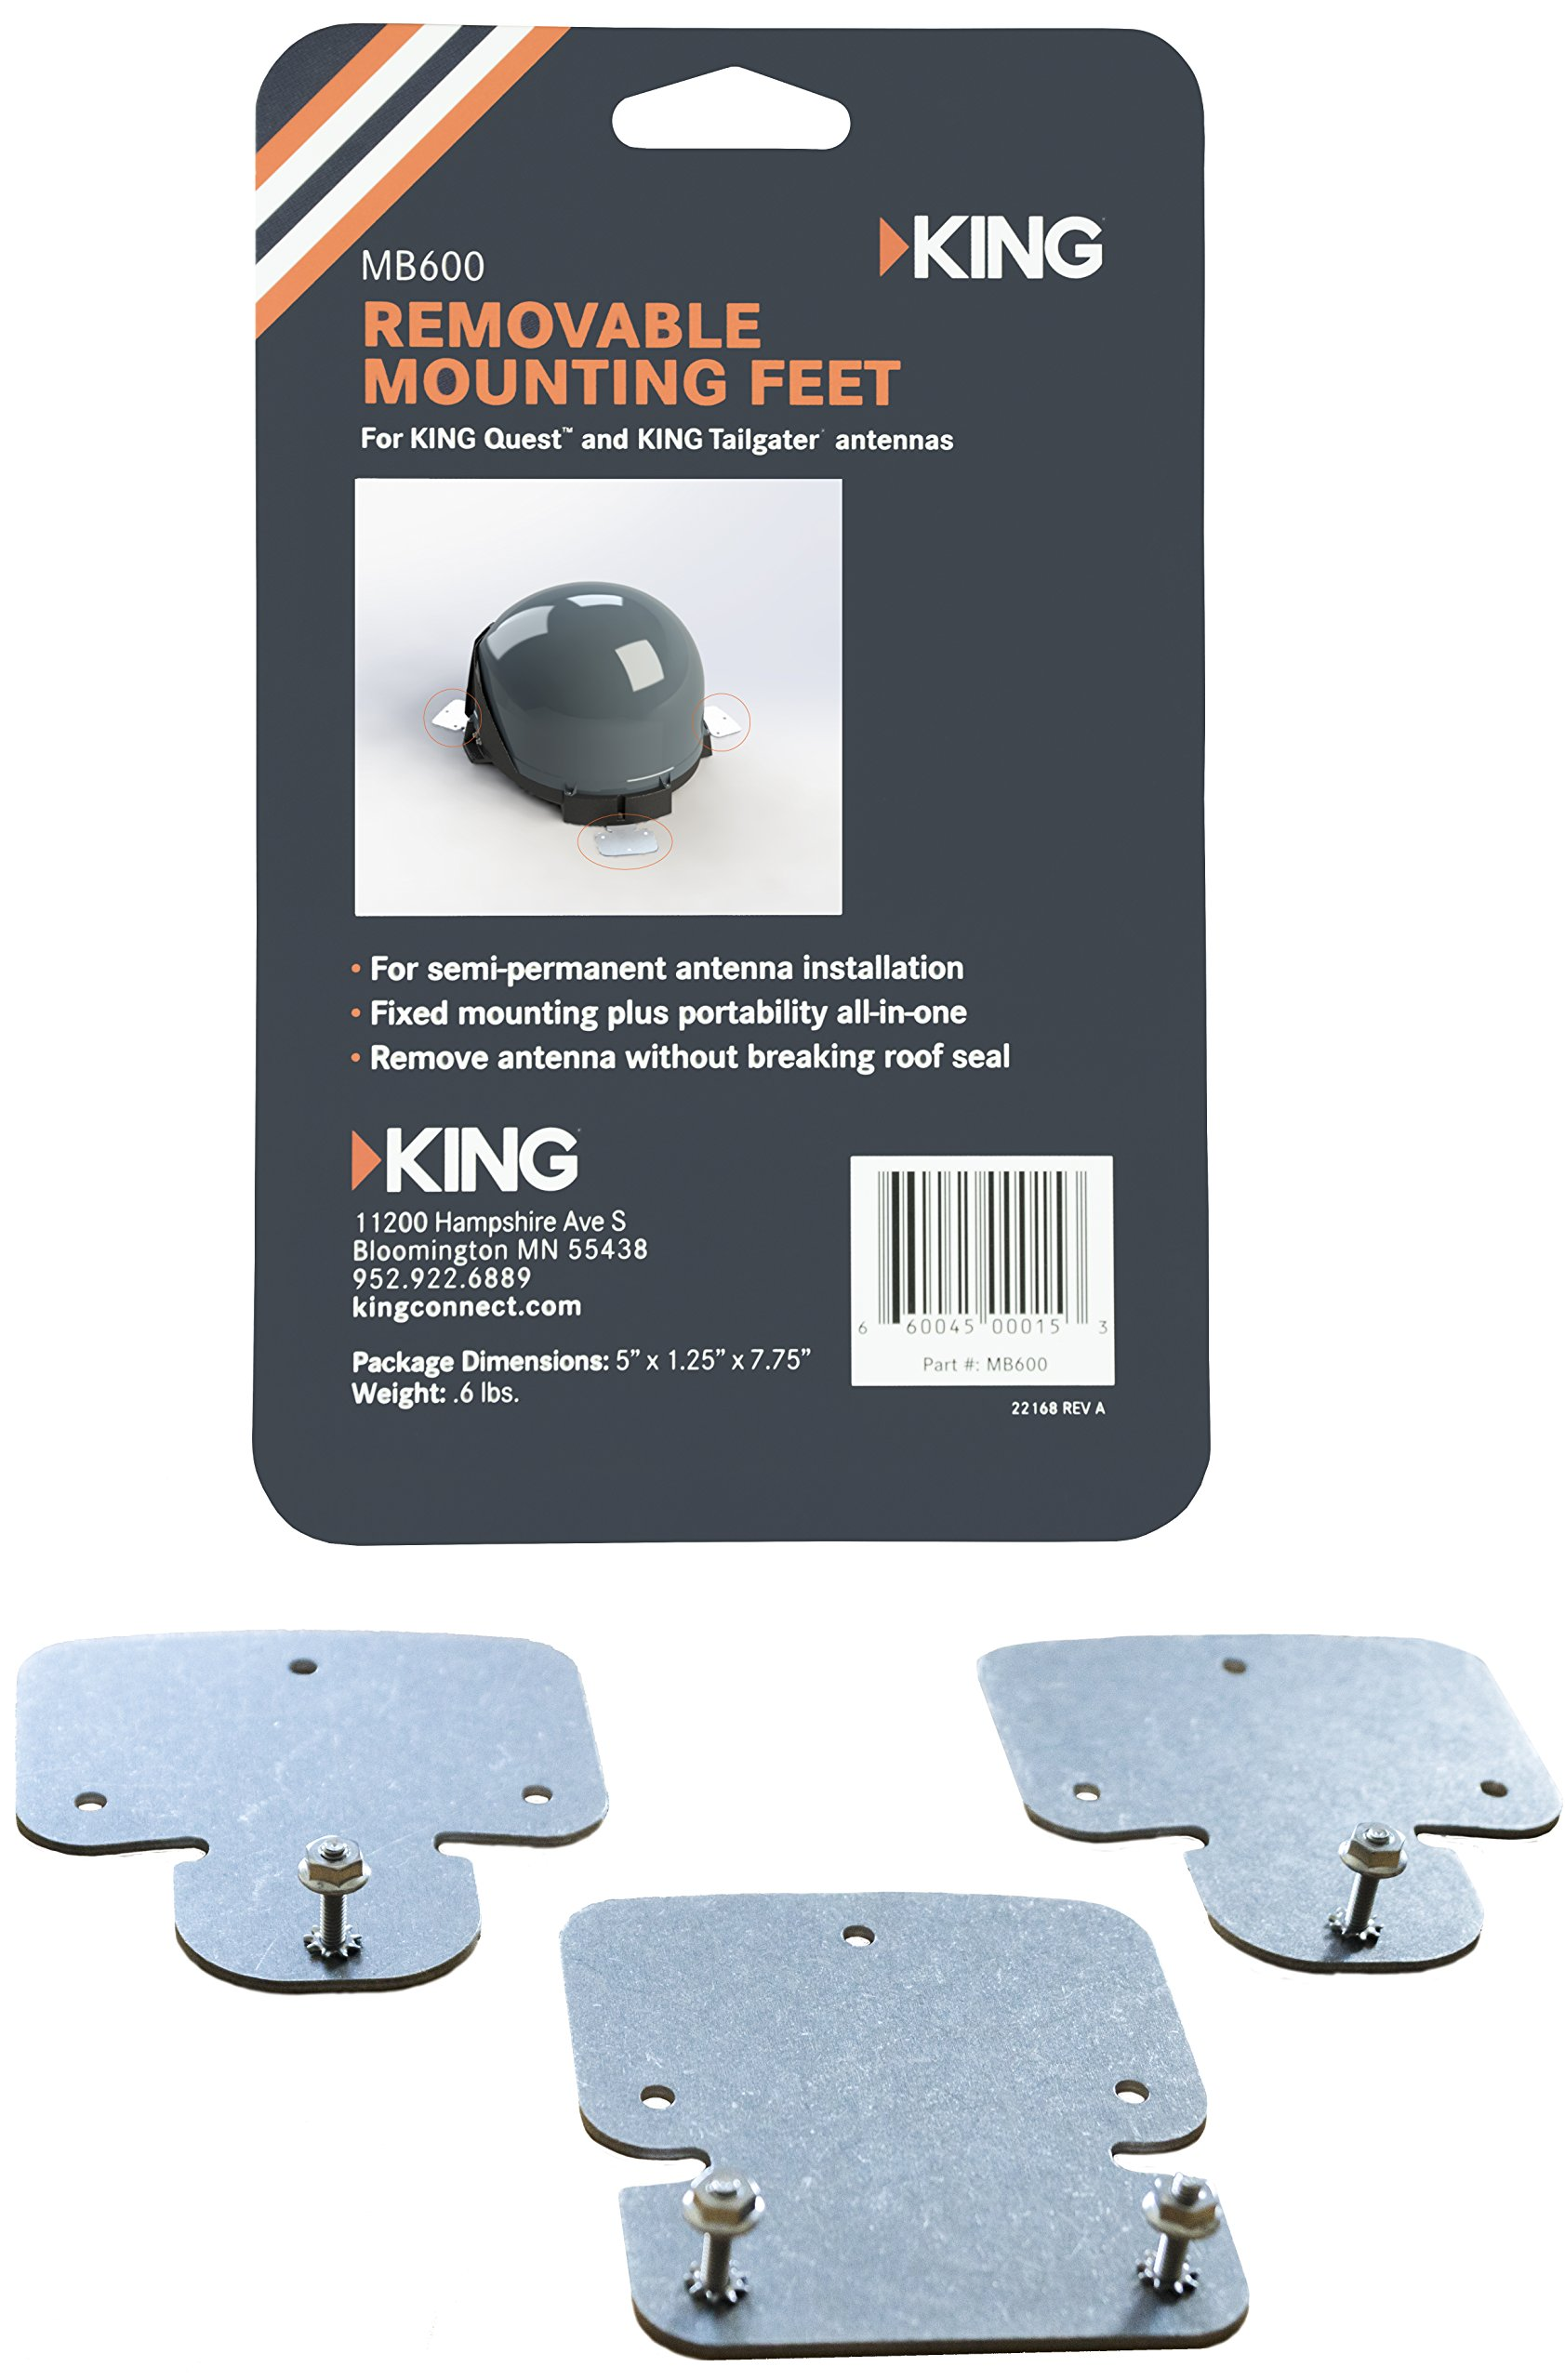 KING MB600 Removable Roof Mount Bracket Tailgater and Quest Satellite Antennas by KING